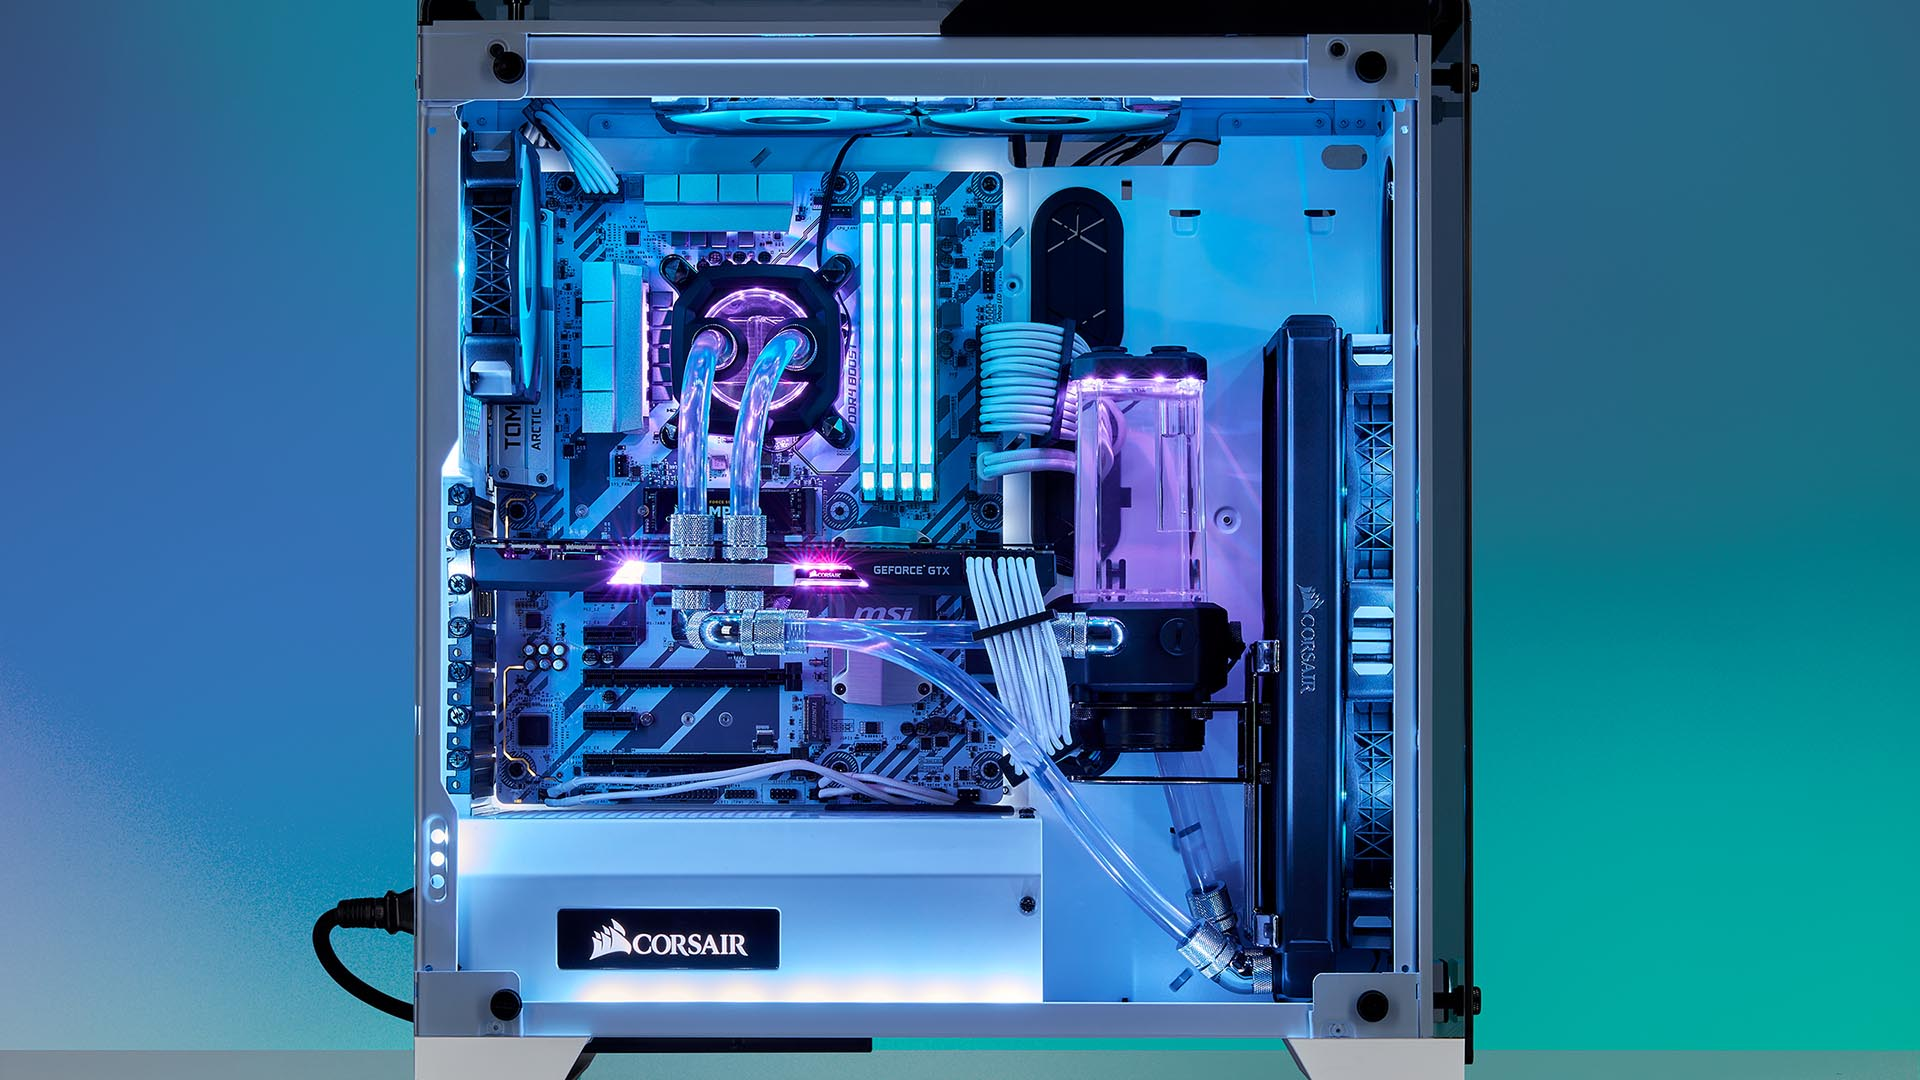 Corsair takes on EKWB with its new Hydro X liquid cooling